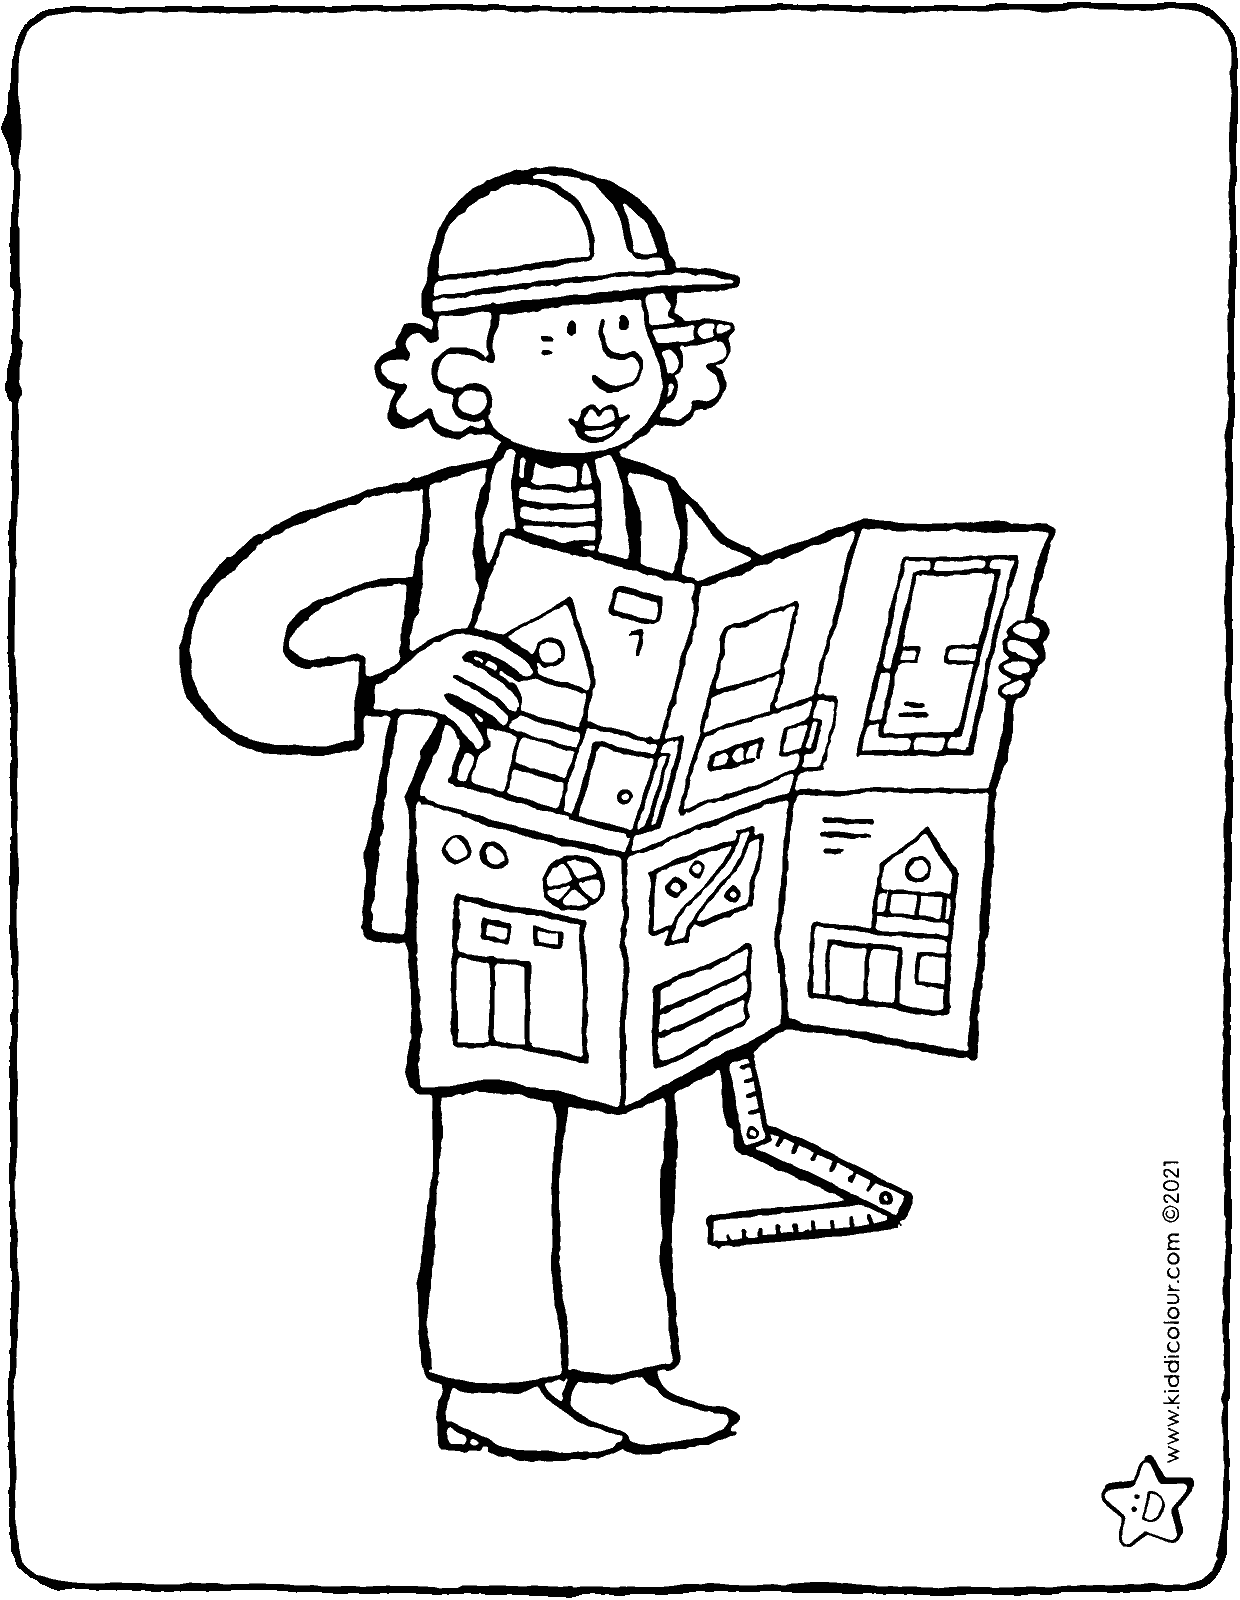 architect colouring page drawing picture 01V